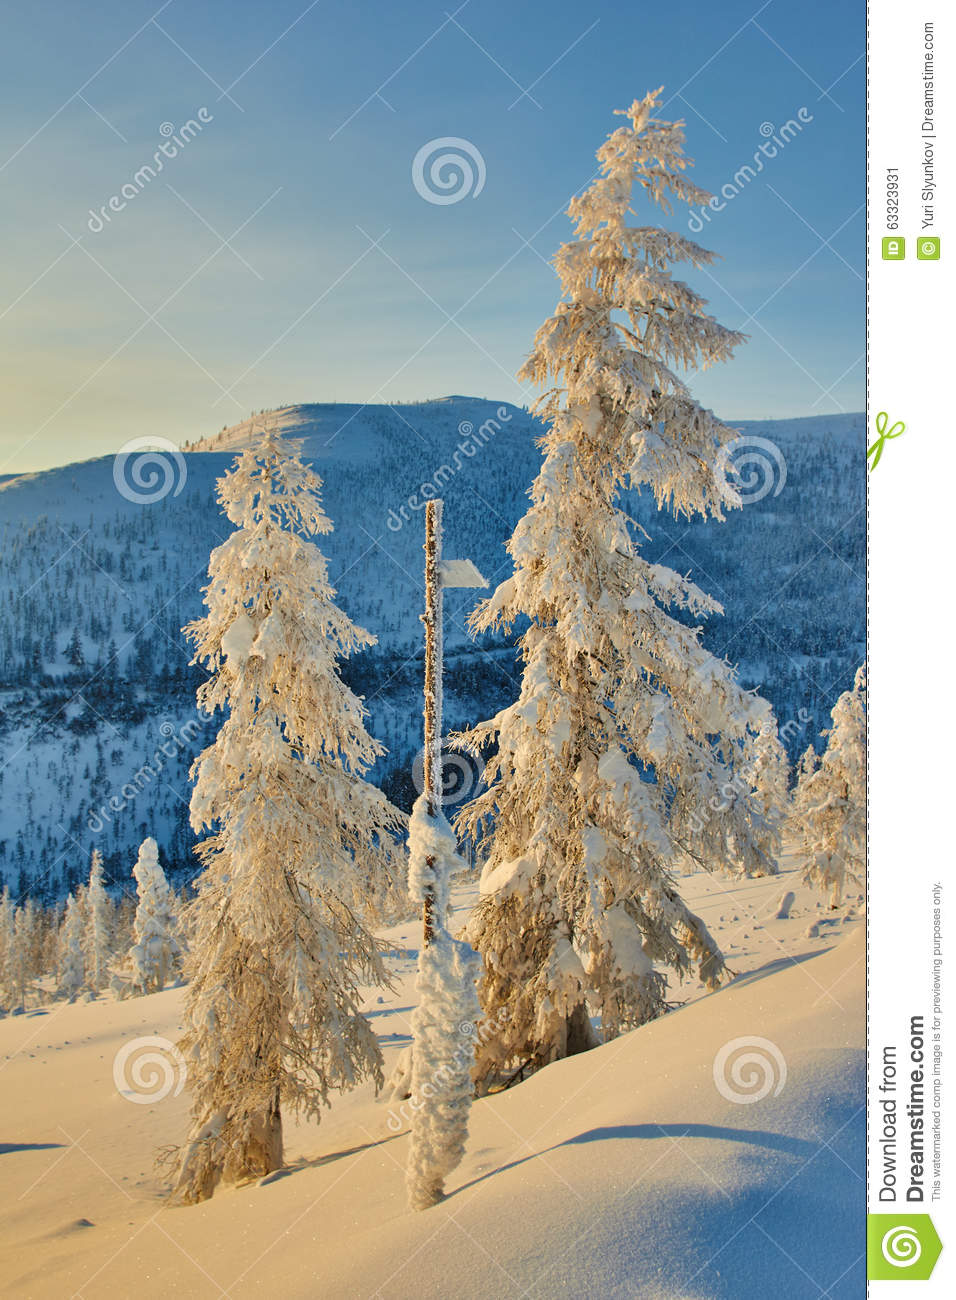 Larch in snow in mountains. Winter. A decline. Evening. Kolyma